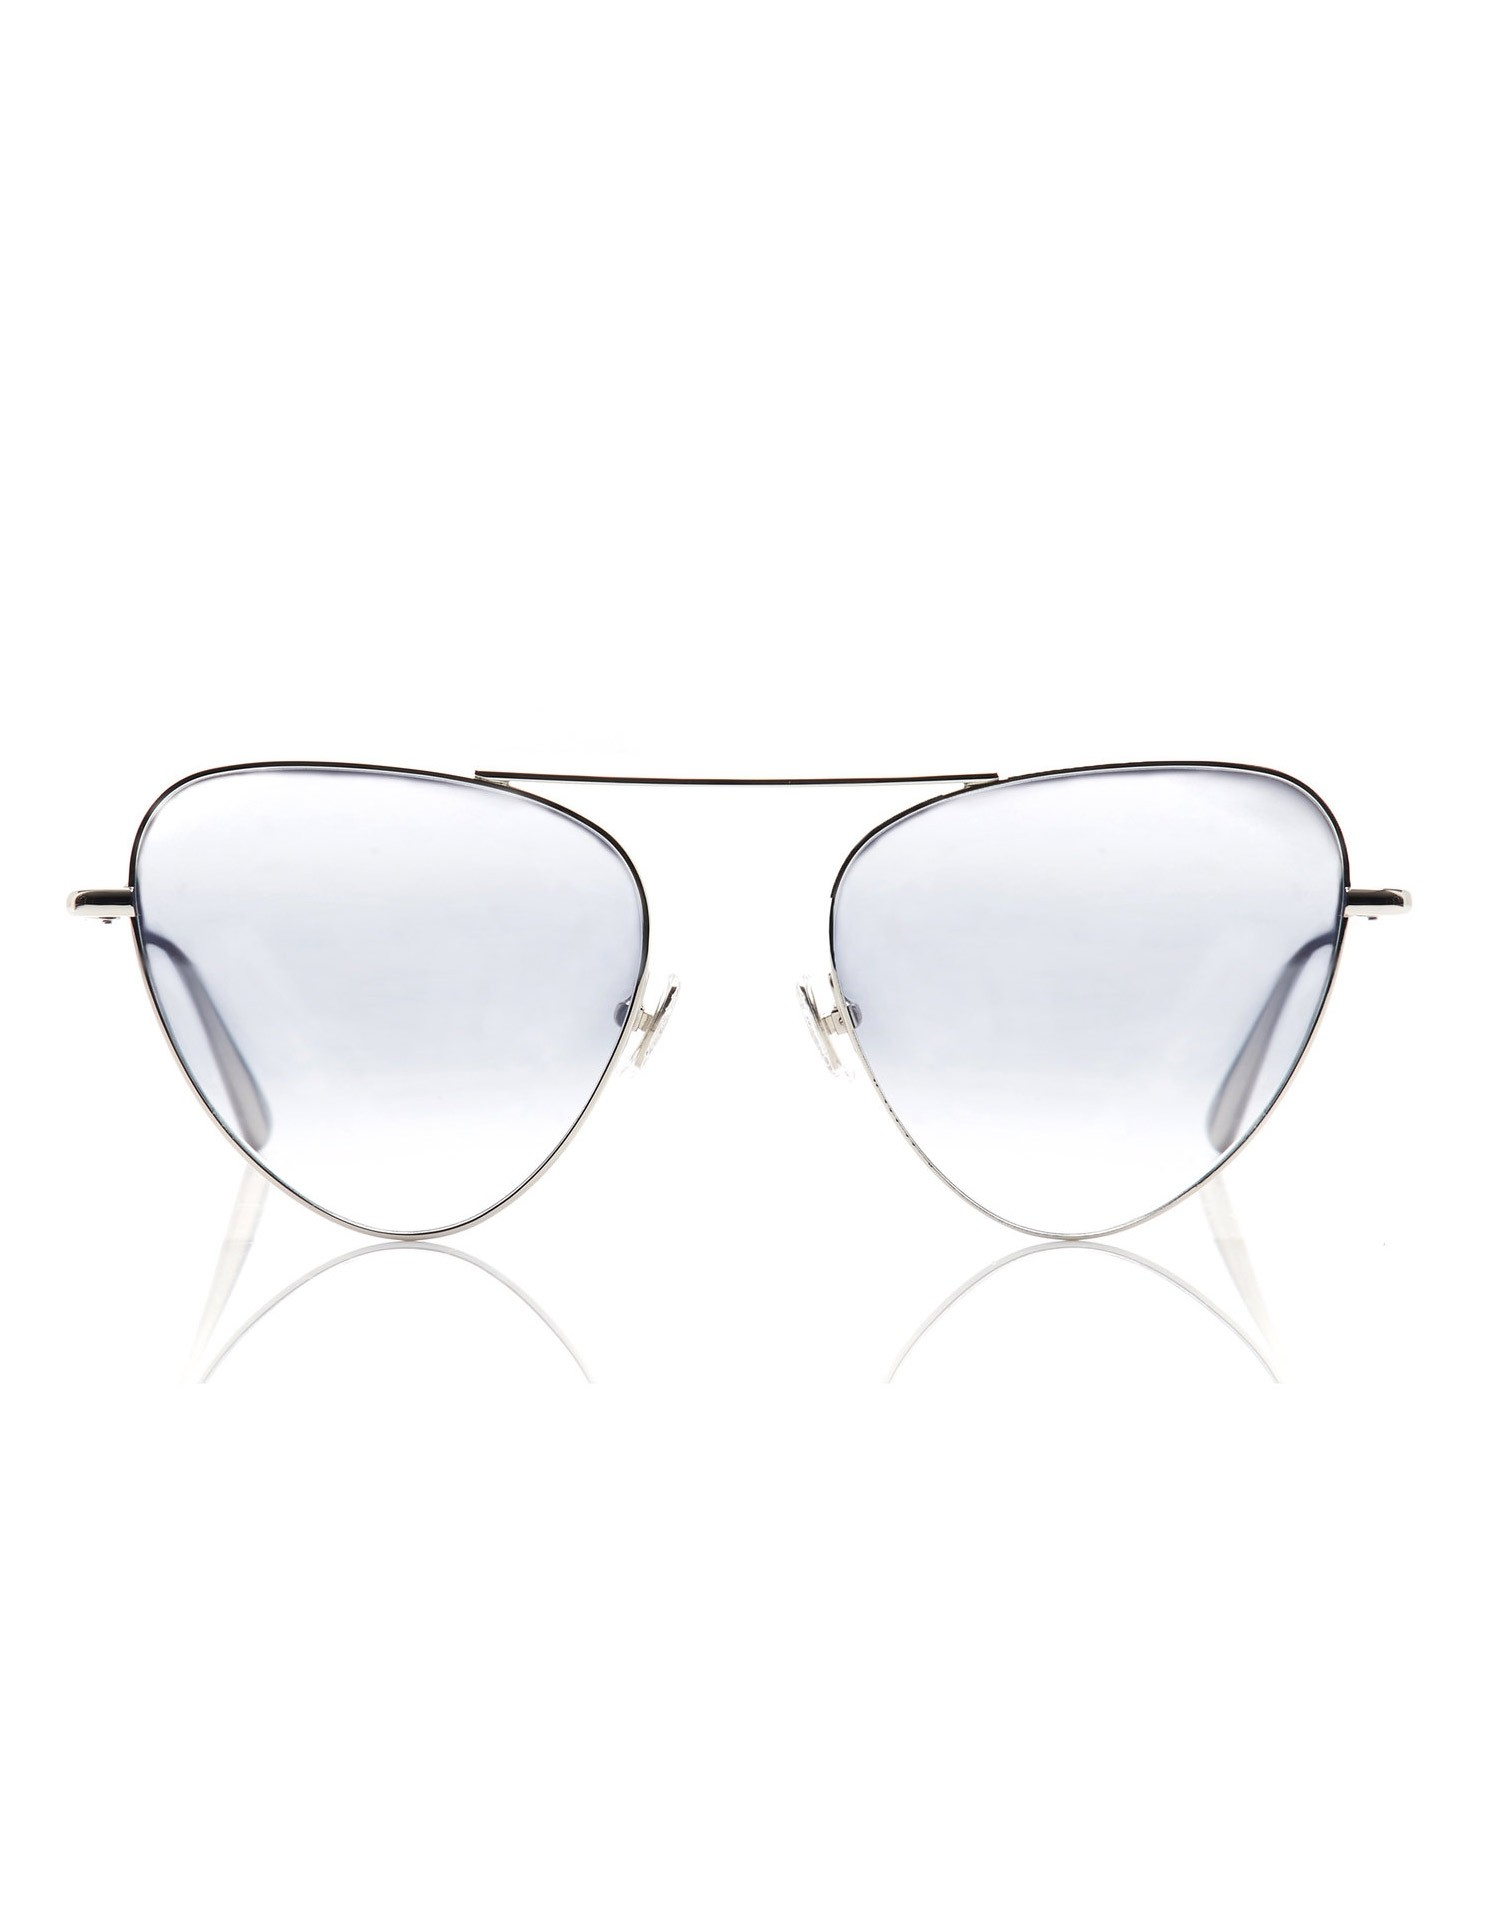 Monse Erika Sunglasses with Silver and Clear Ombre Shades